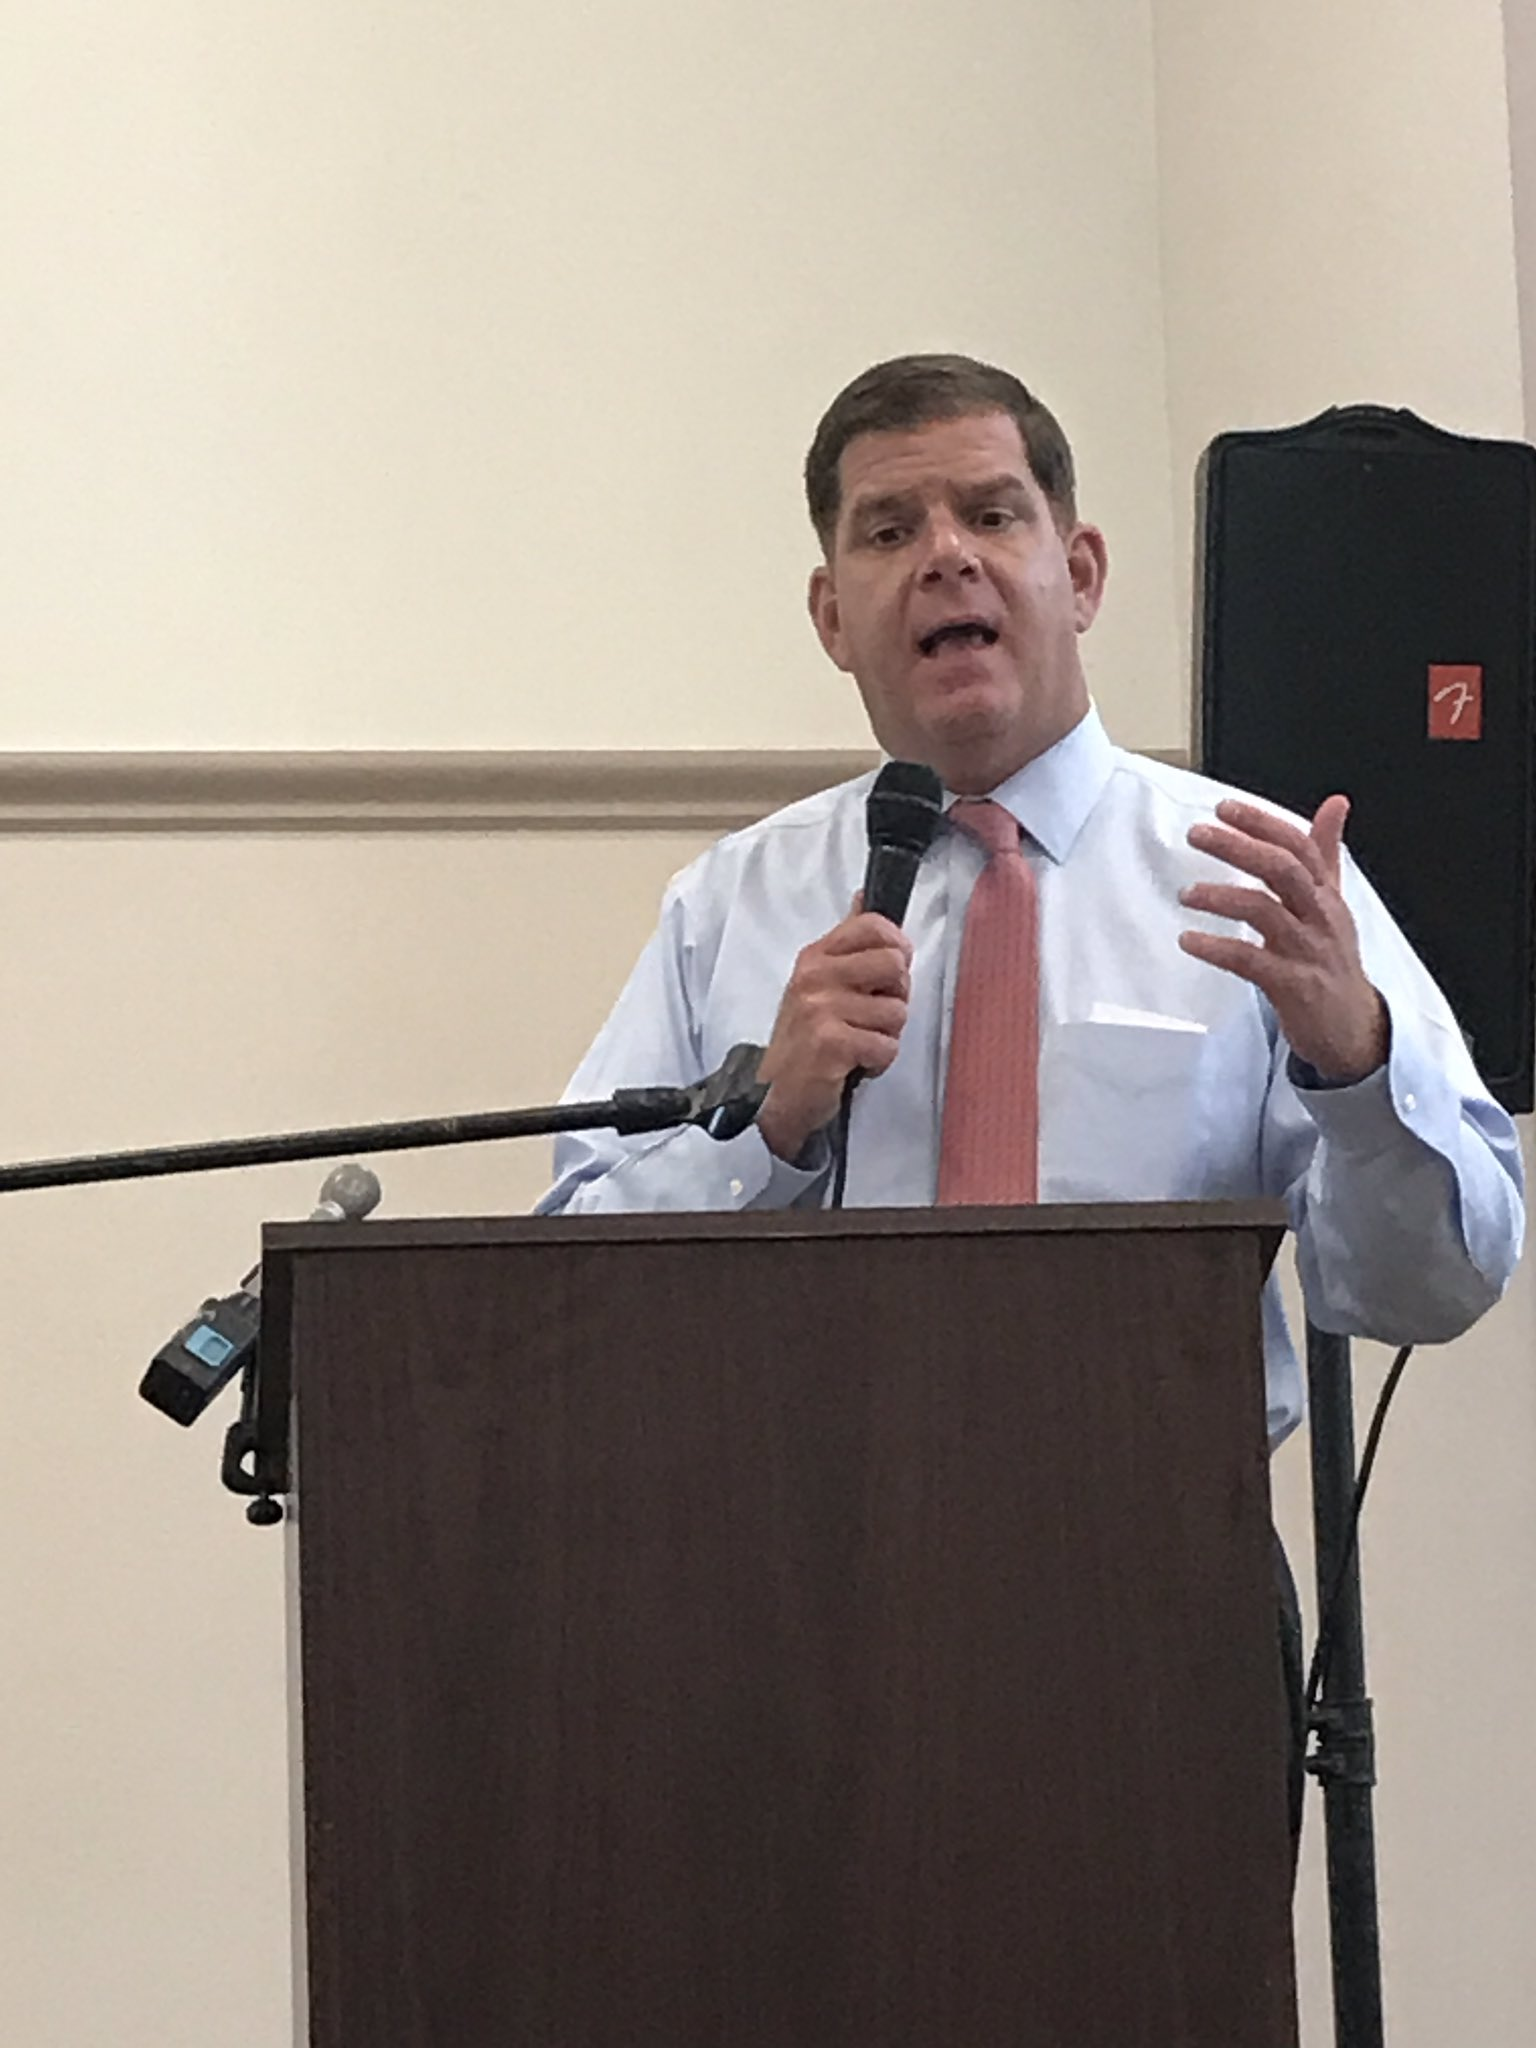 Thank you @marty_walsh for speaking at #MIN99 & supporting African-American tech founders & continued opportunity for innovation in Boston! https://t.co/lNBV3p1HUm